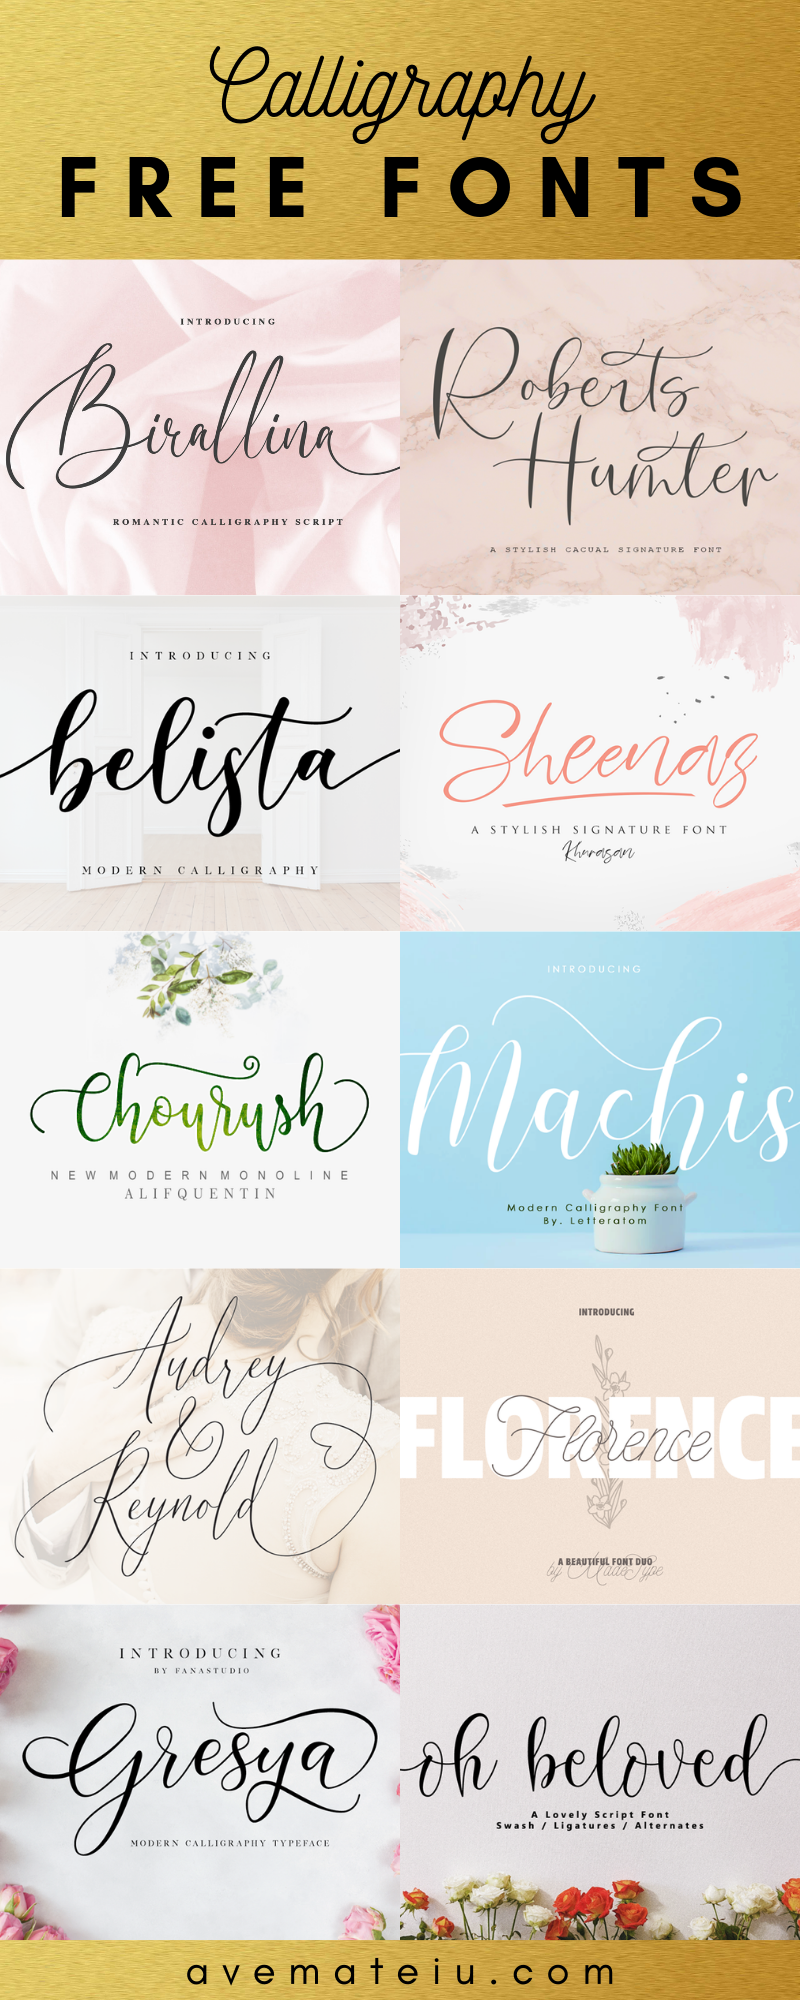 10 new free beautiful calligraphy fonts  u2013 part 4  u2013 ave mateiu